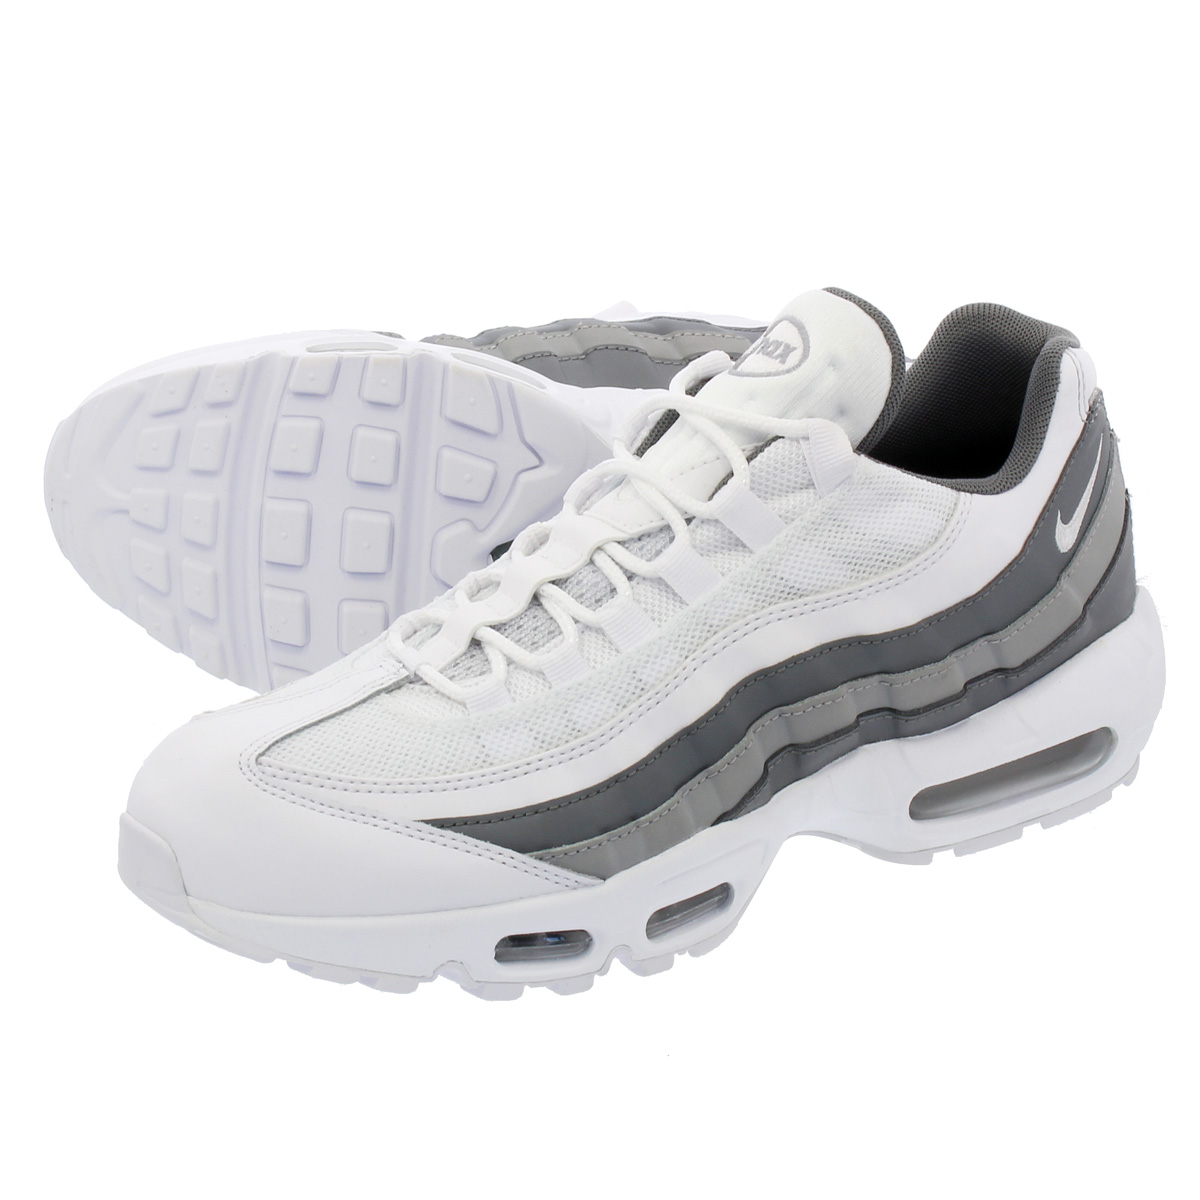 quality design 2626c 4a57d LOWTEX PLUS  NIKE AIR MAX 95 ESSENTIAL Kie Ney AMAX 95 essential .